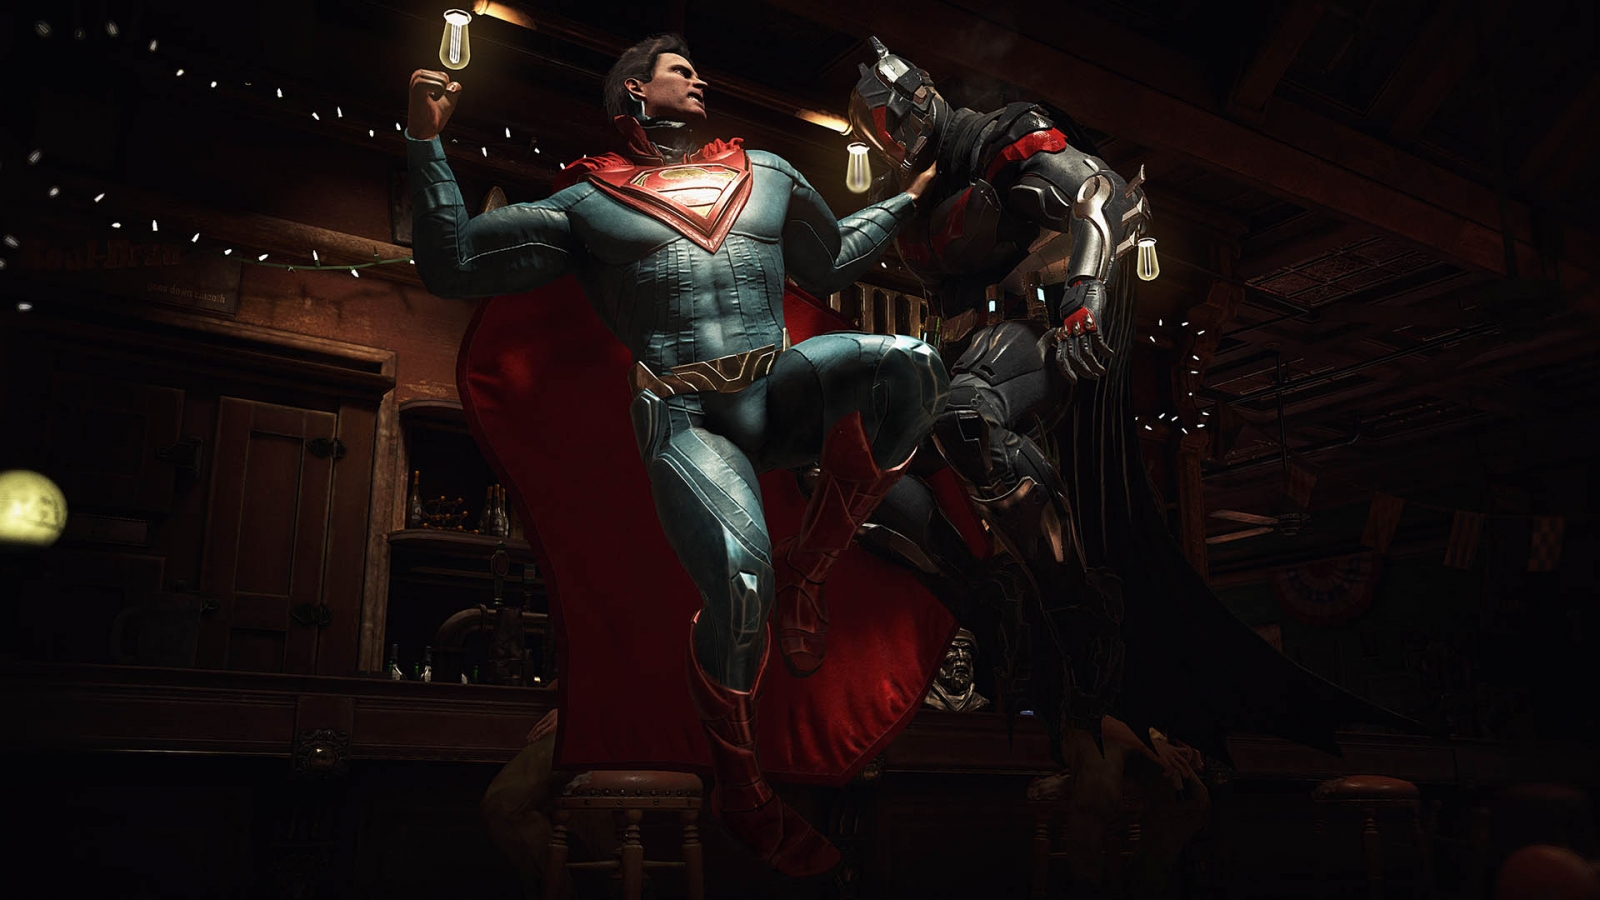 Is Ed Boon Teasing An Injustice 2 Beta?